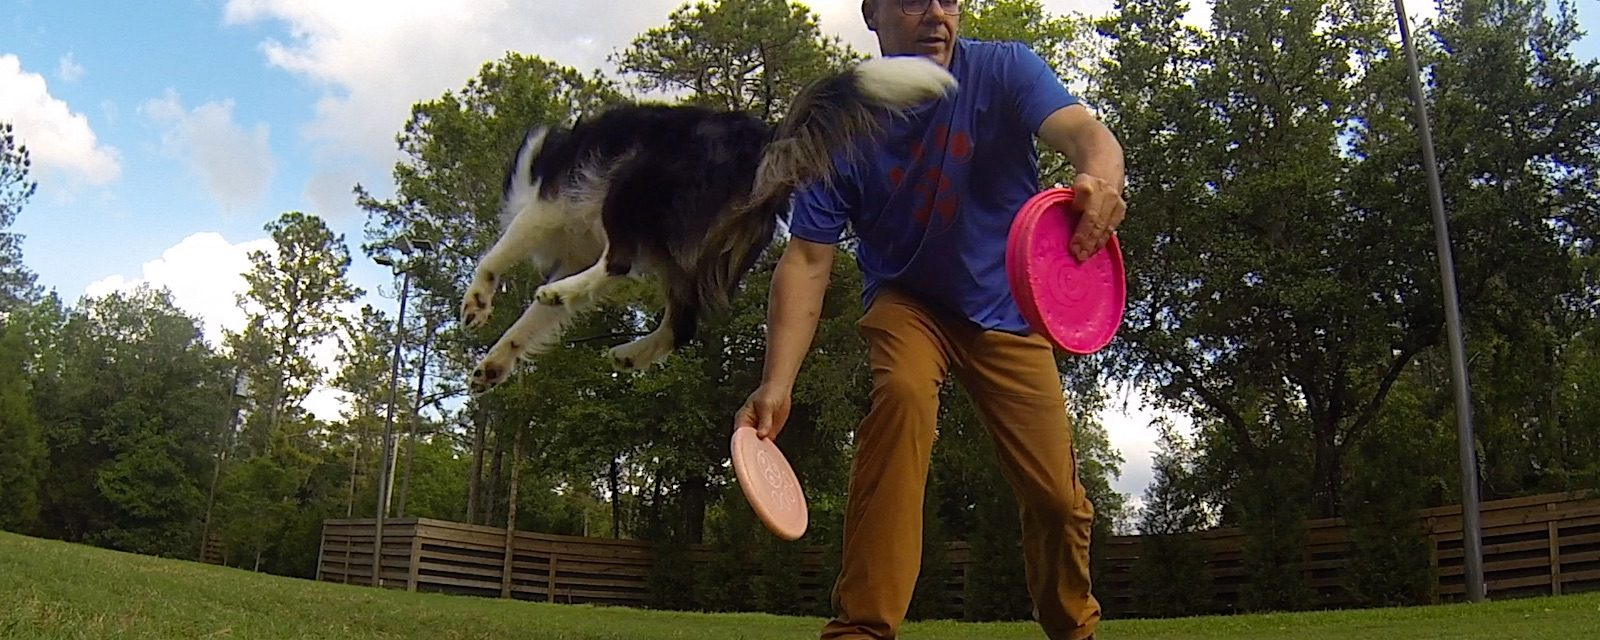 Tao of Disc Dog | There is No Faking Flow